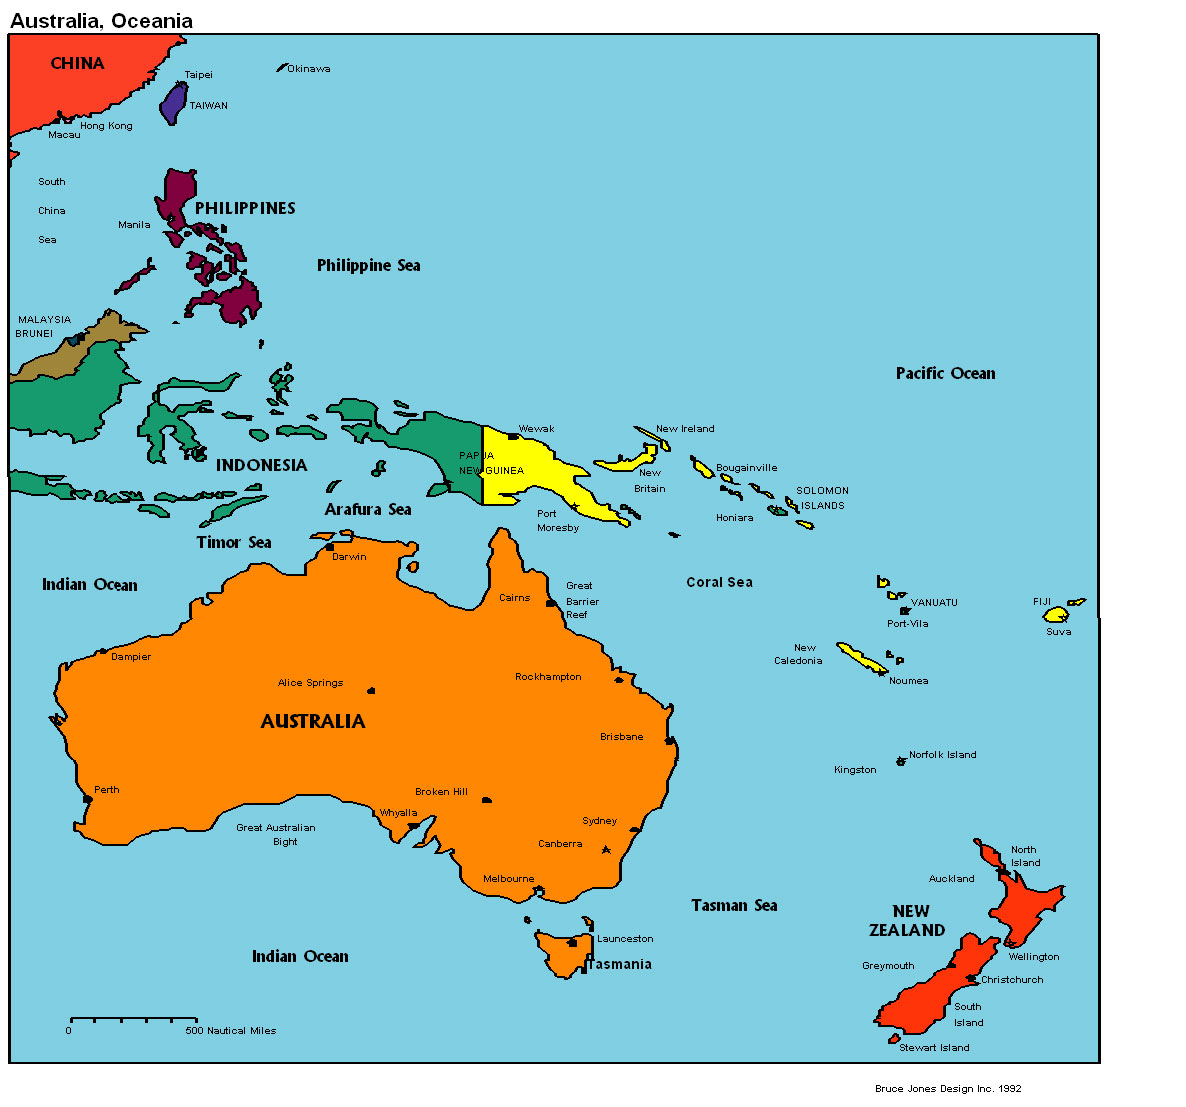 Interactive Map Of Australia.Australia And Oceania Interactive Map